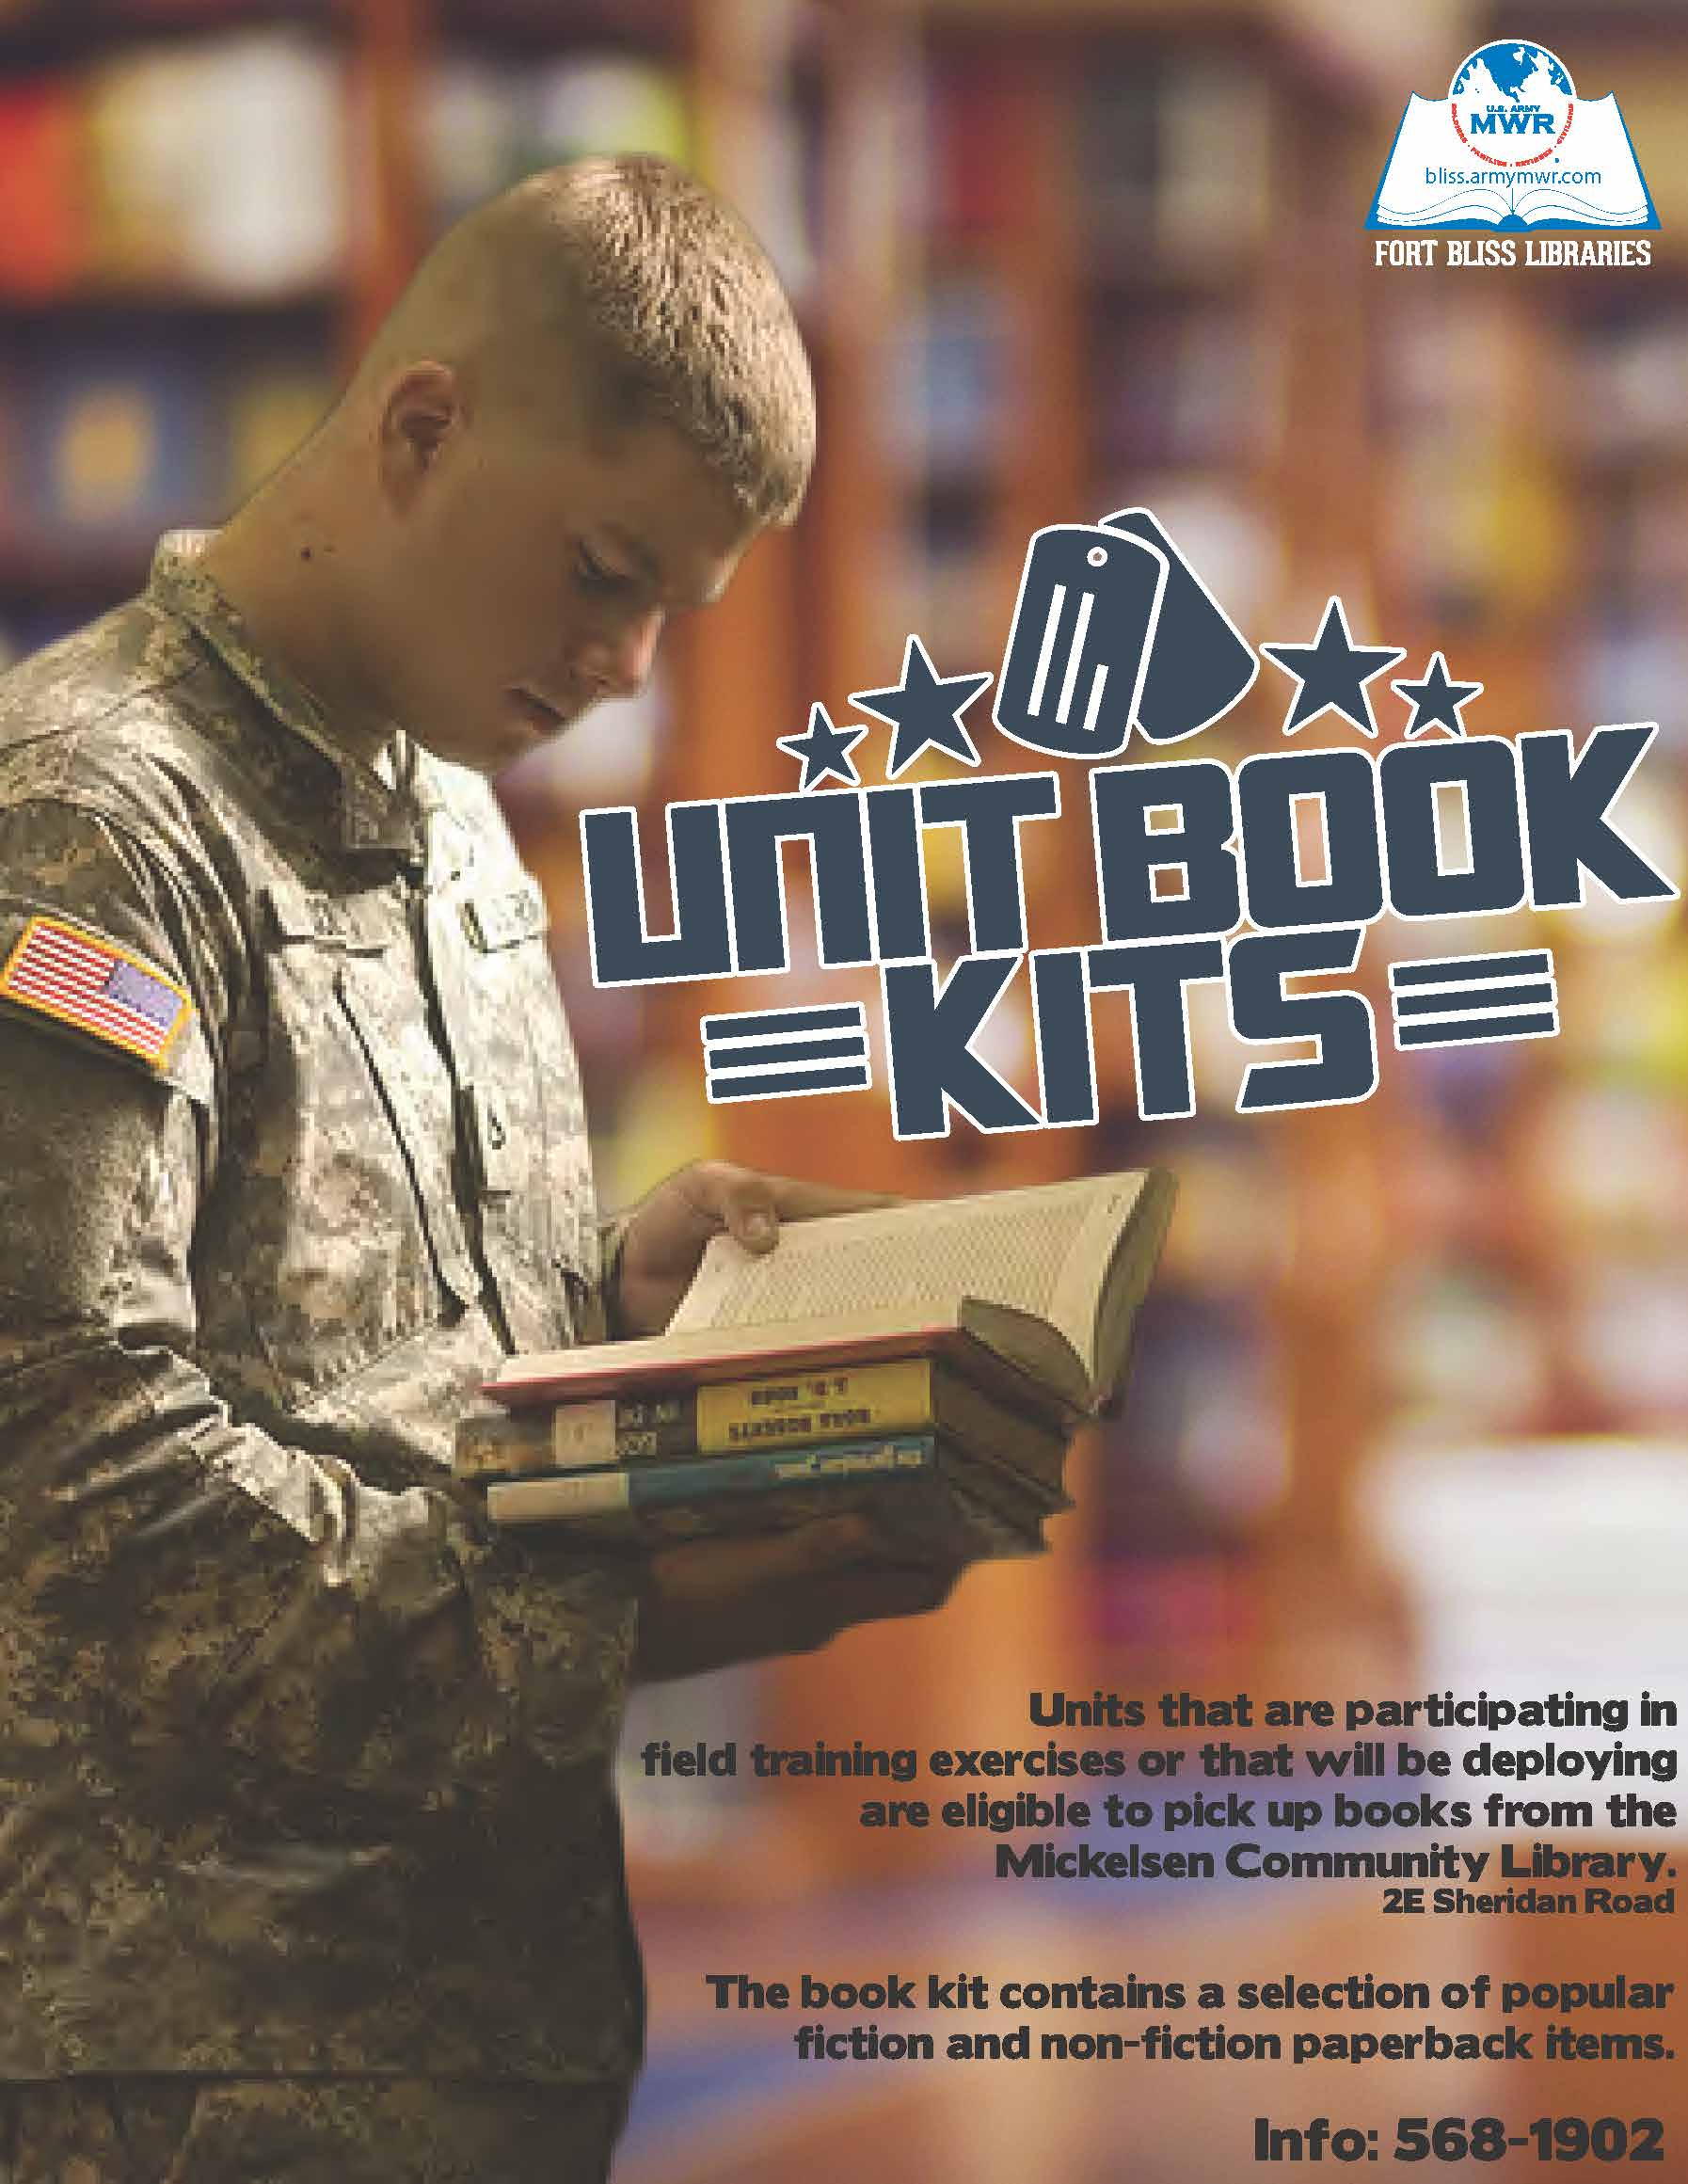 Fort Bliss Libraries